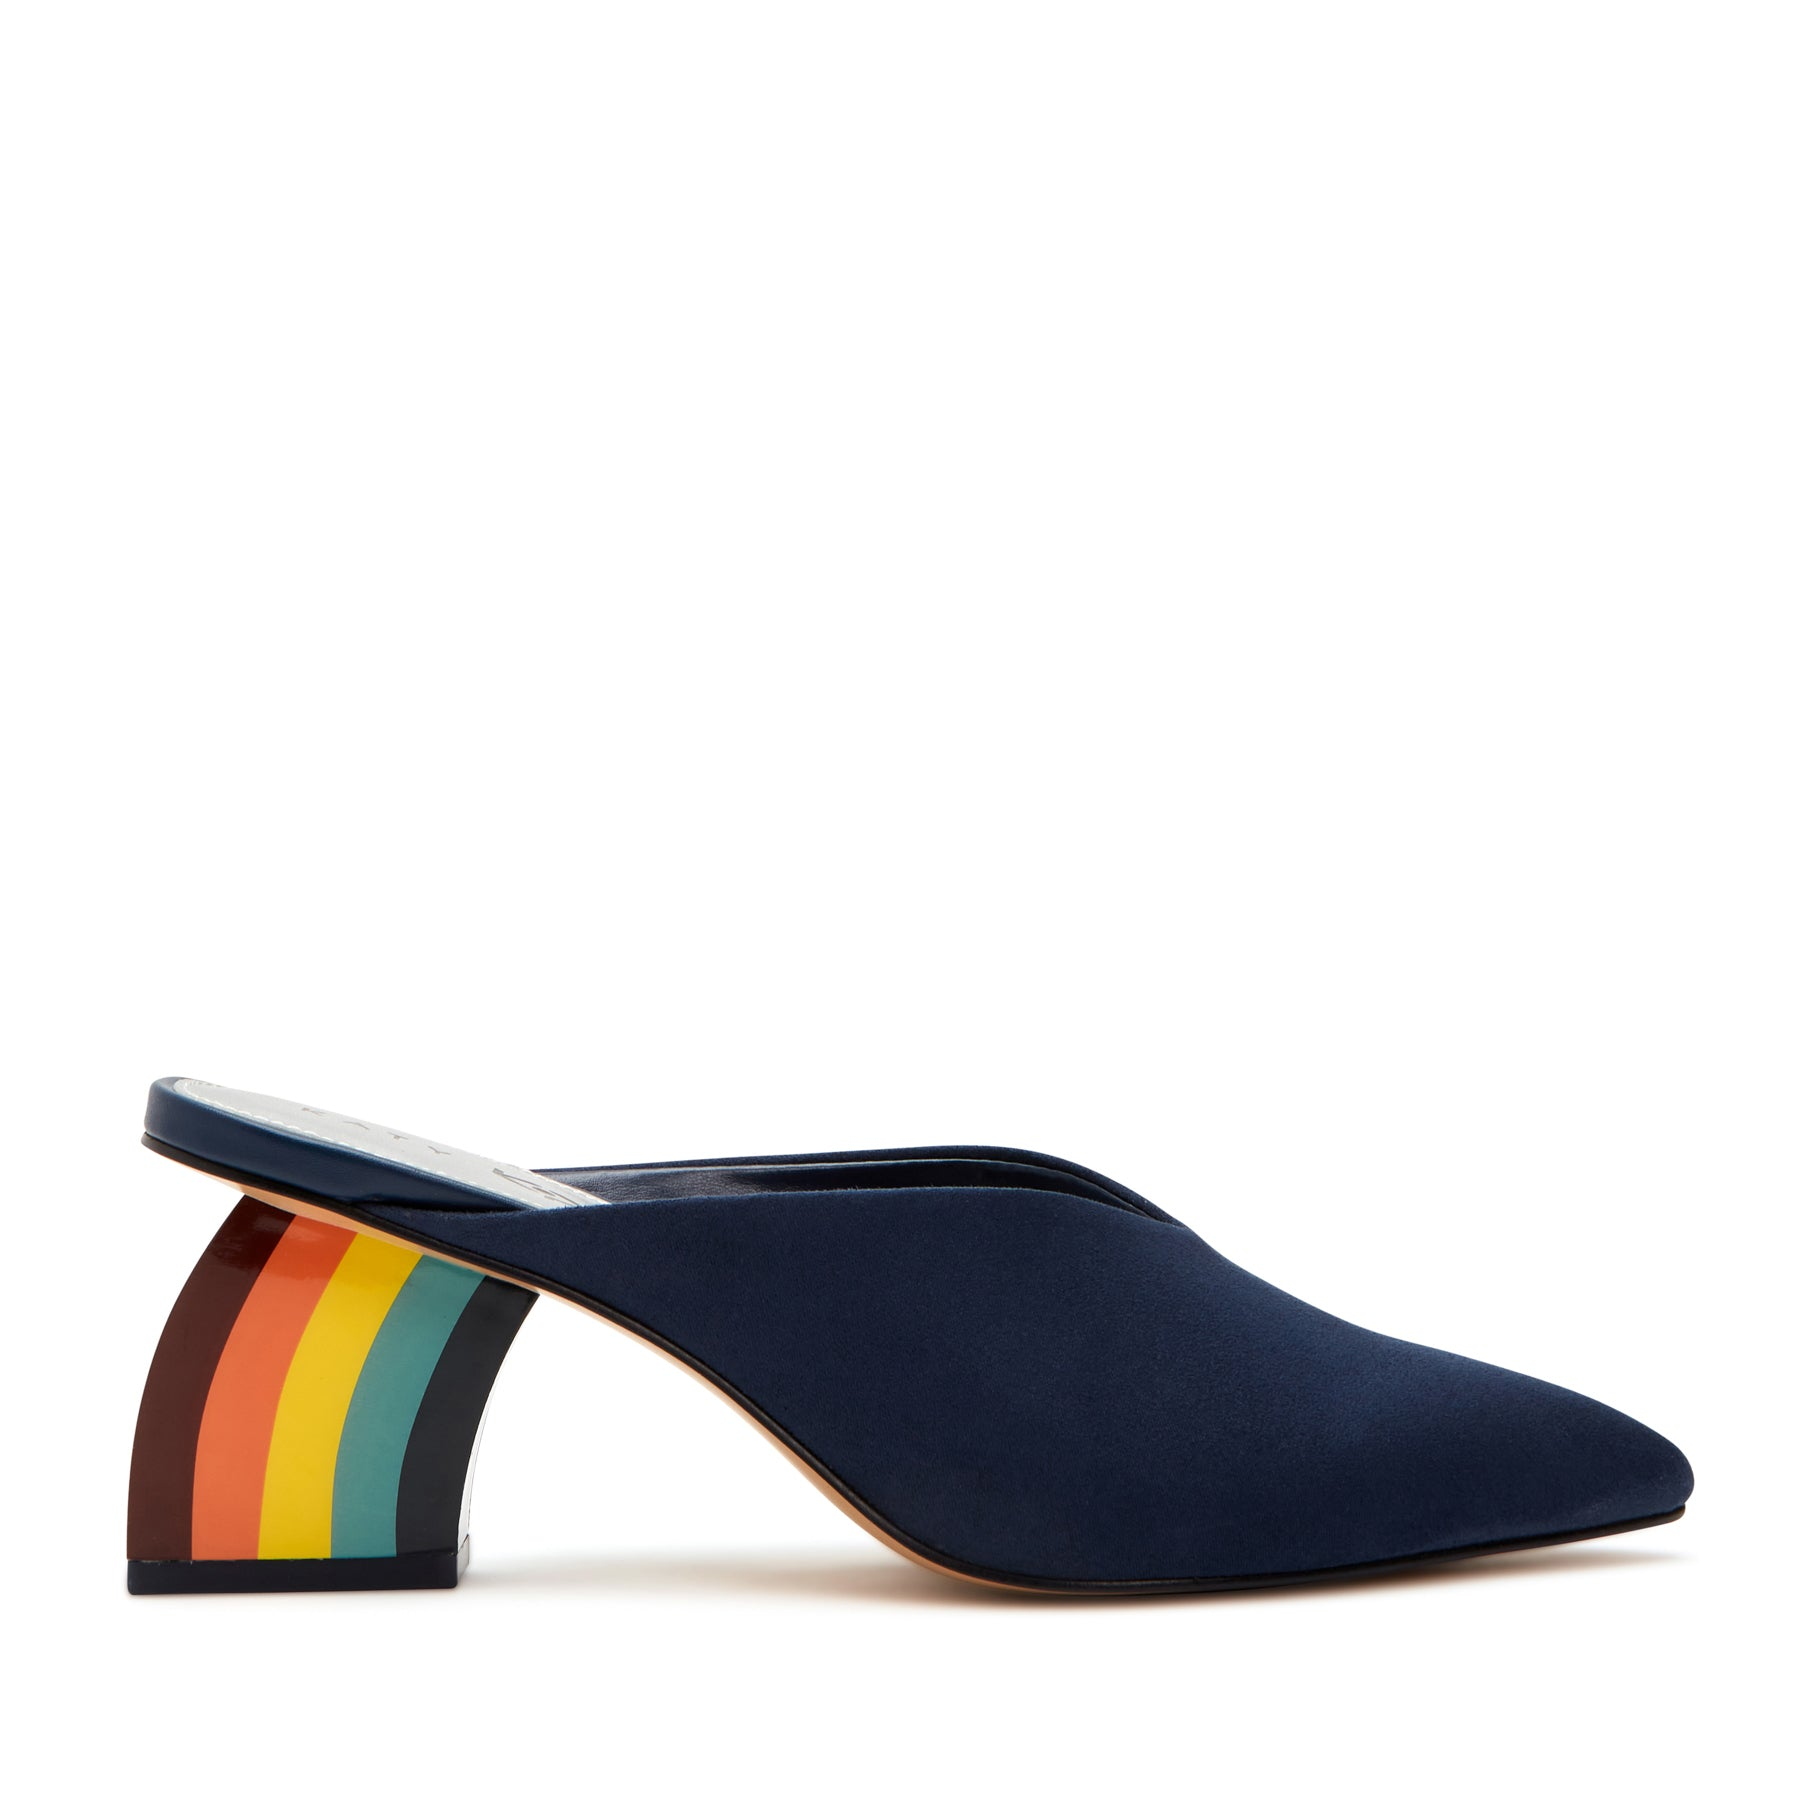 katy perry slip-on pumps in indigo size 5   the henley